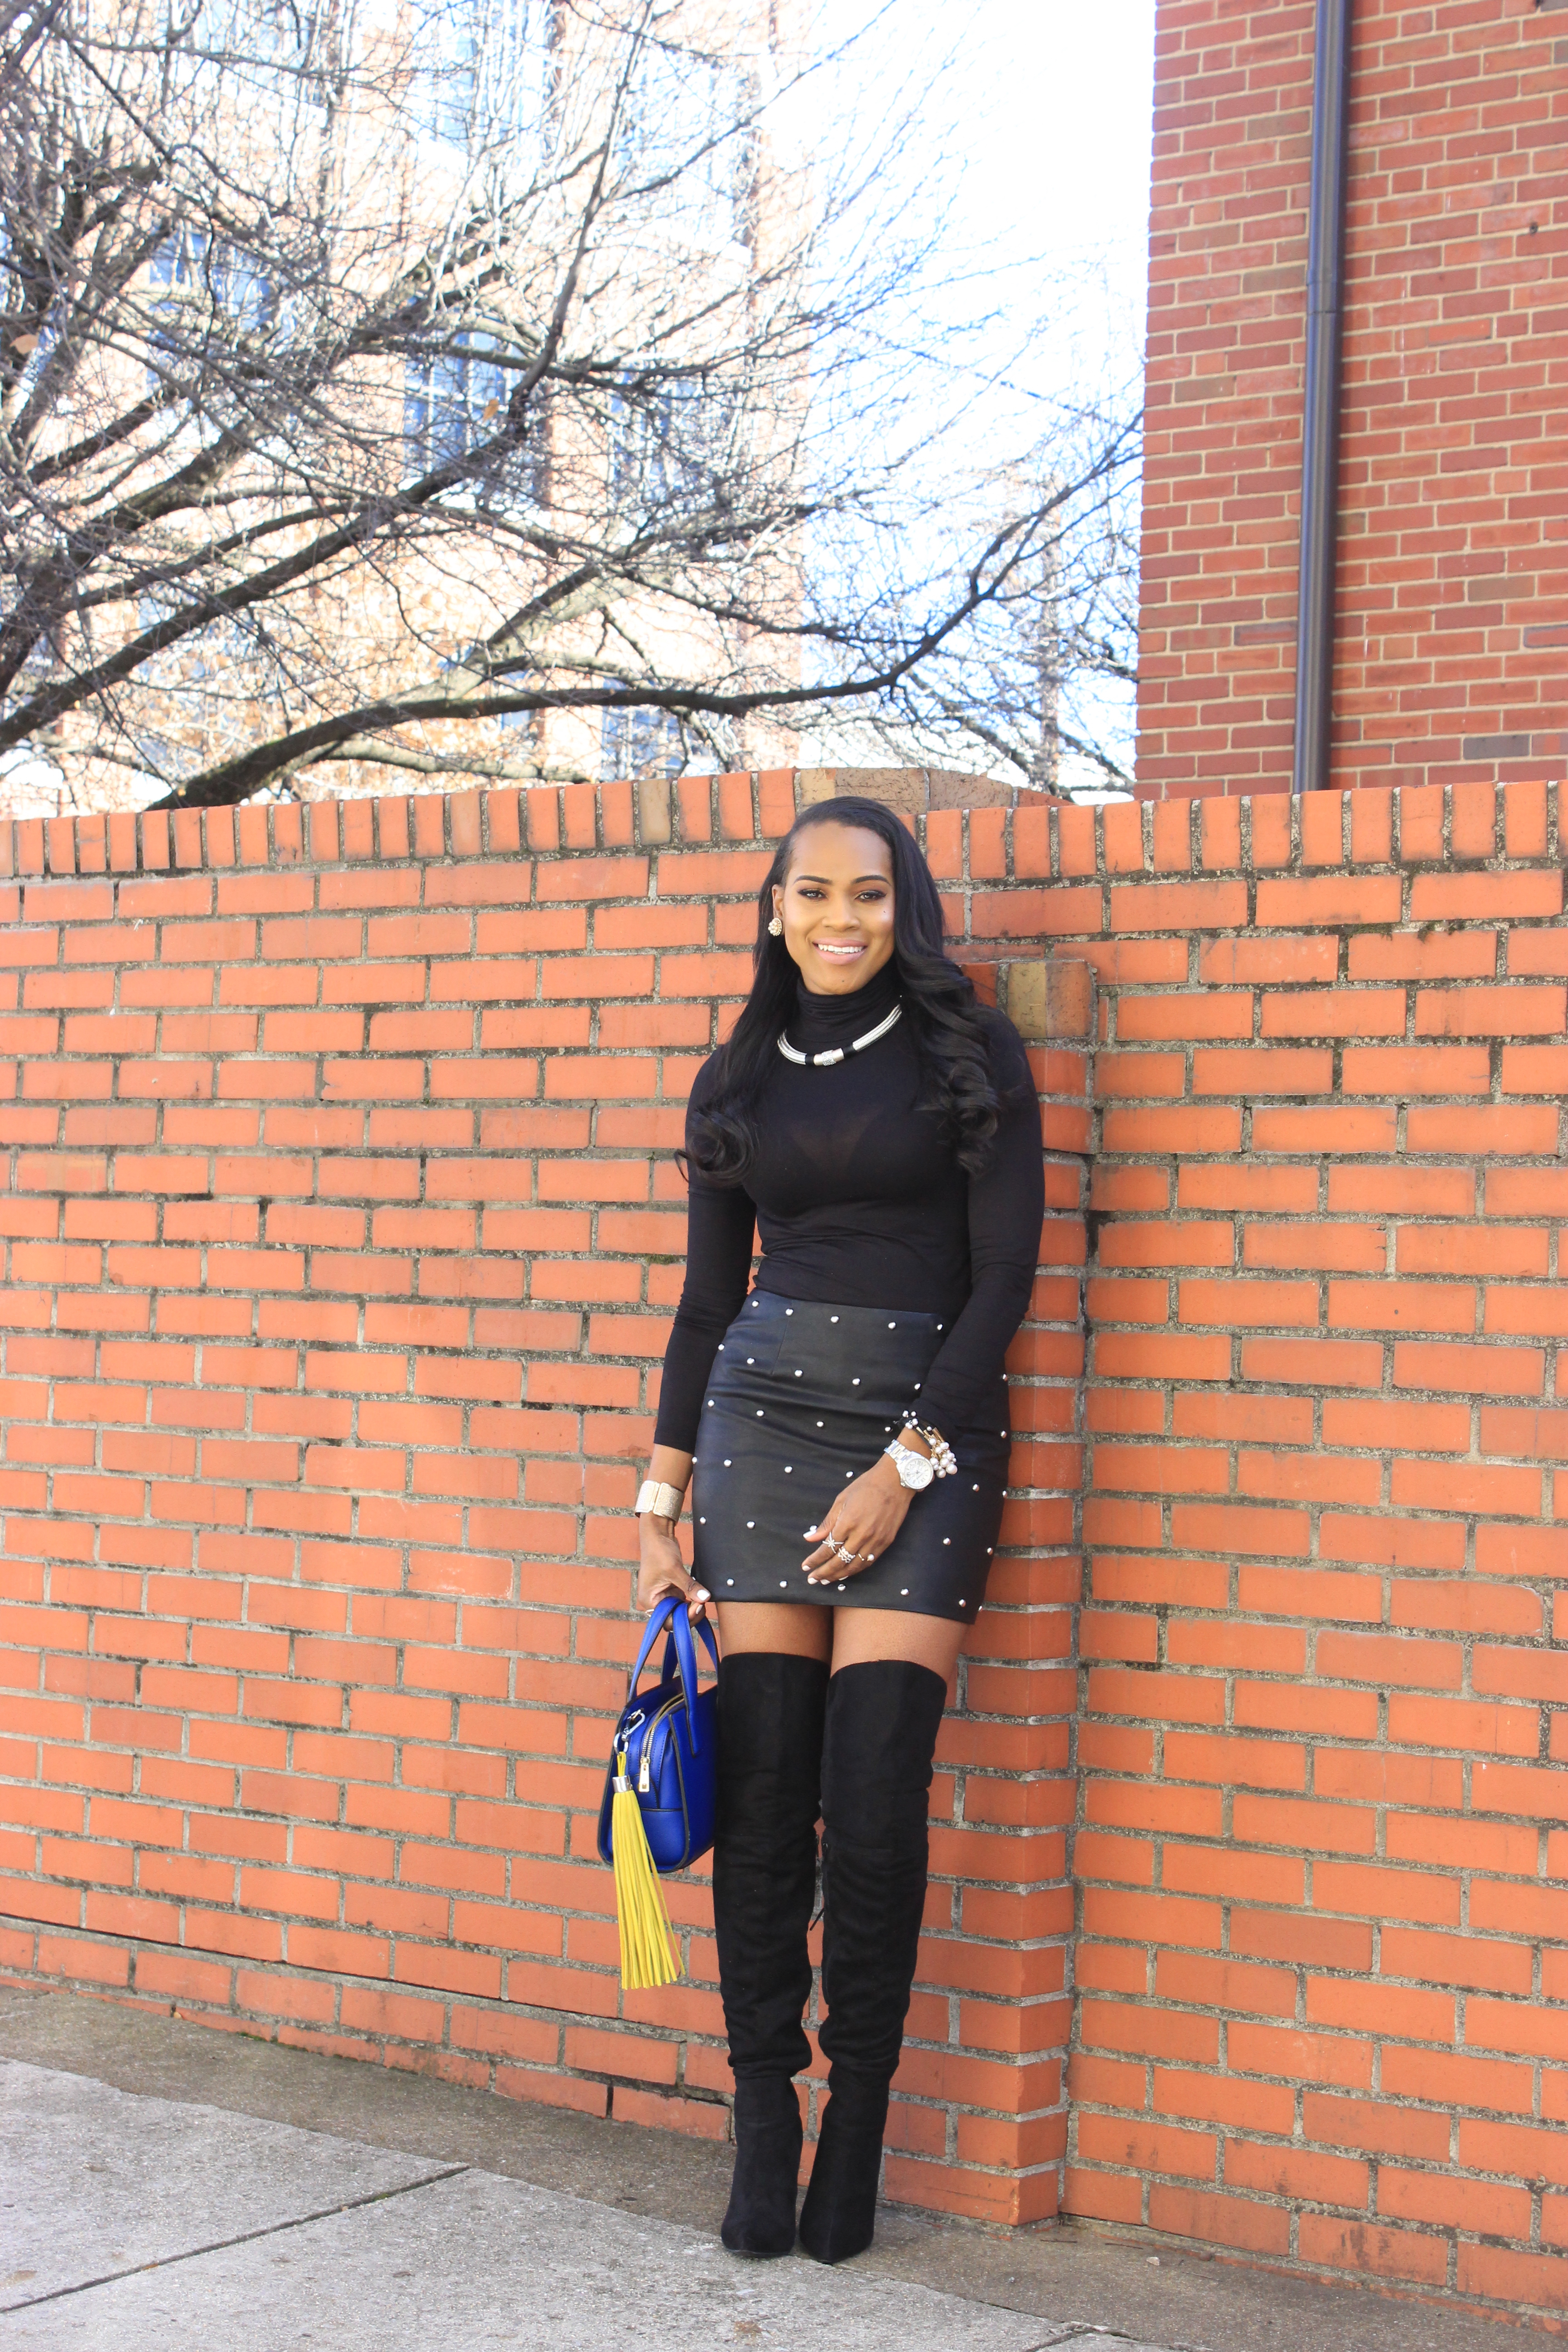 Style-Files-SheIn-Multicolor-Lapel-Color-Block-Coat-Forever21-Faux-Leather-studded-mini-skirt-black-sheer-turtleneck-Truffle-Collection-Over- The-Knee-Lace-Up-Back-High-Heeled-Boots-Hot-Pink-Beanie-Winter-Coat-Style-Guide-Oohlalablog-8